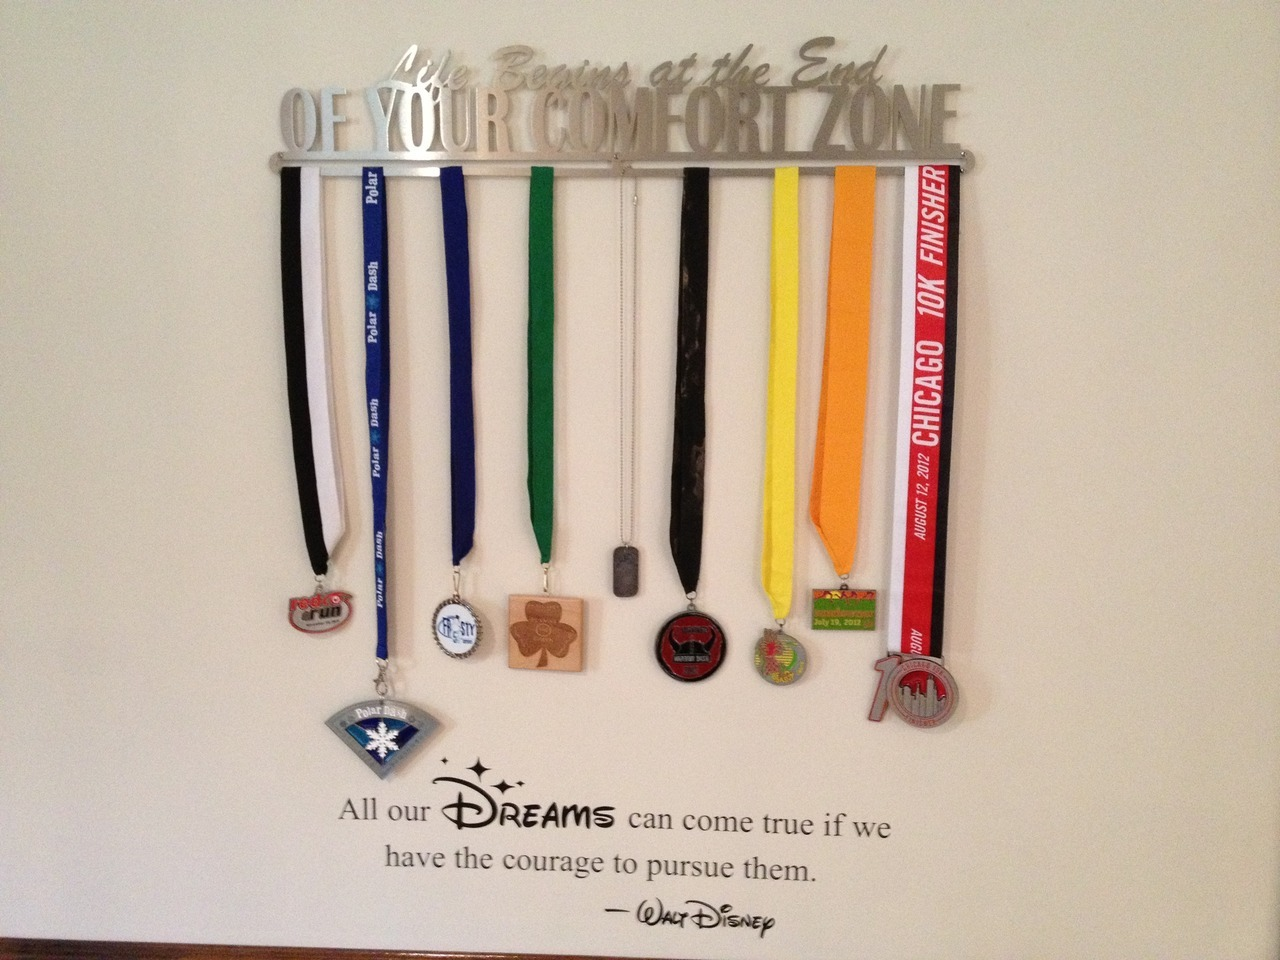 I added this Walt Disney quote to my wall just below my medal hanger and really like how its works together. (This is the quote that will be on the WDW Marathon medal and was a strong influence in casting my fears aside and going for it). I found this Quote as a decal on Amazon.com and ordered it - free shipping, arrived in a few days and was extremely easy to put up.  Really happy with it!